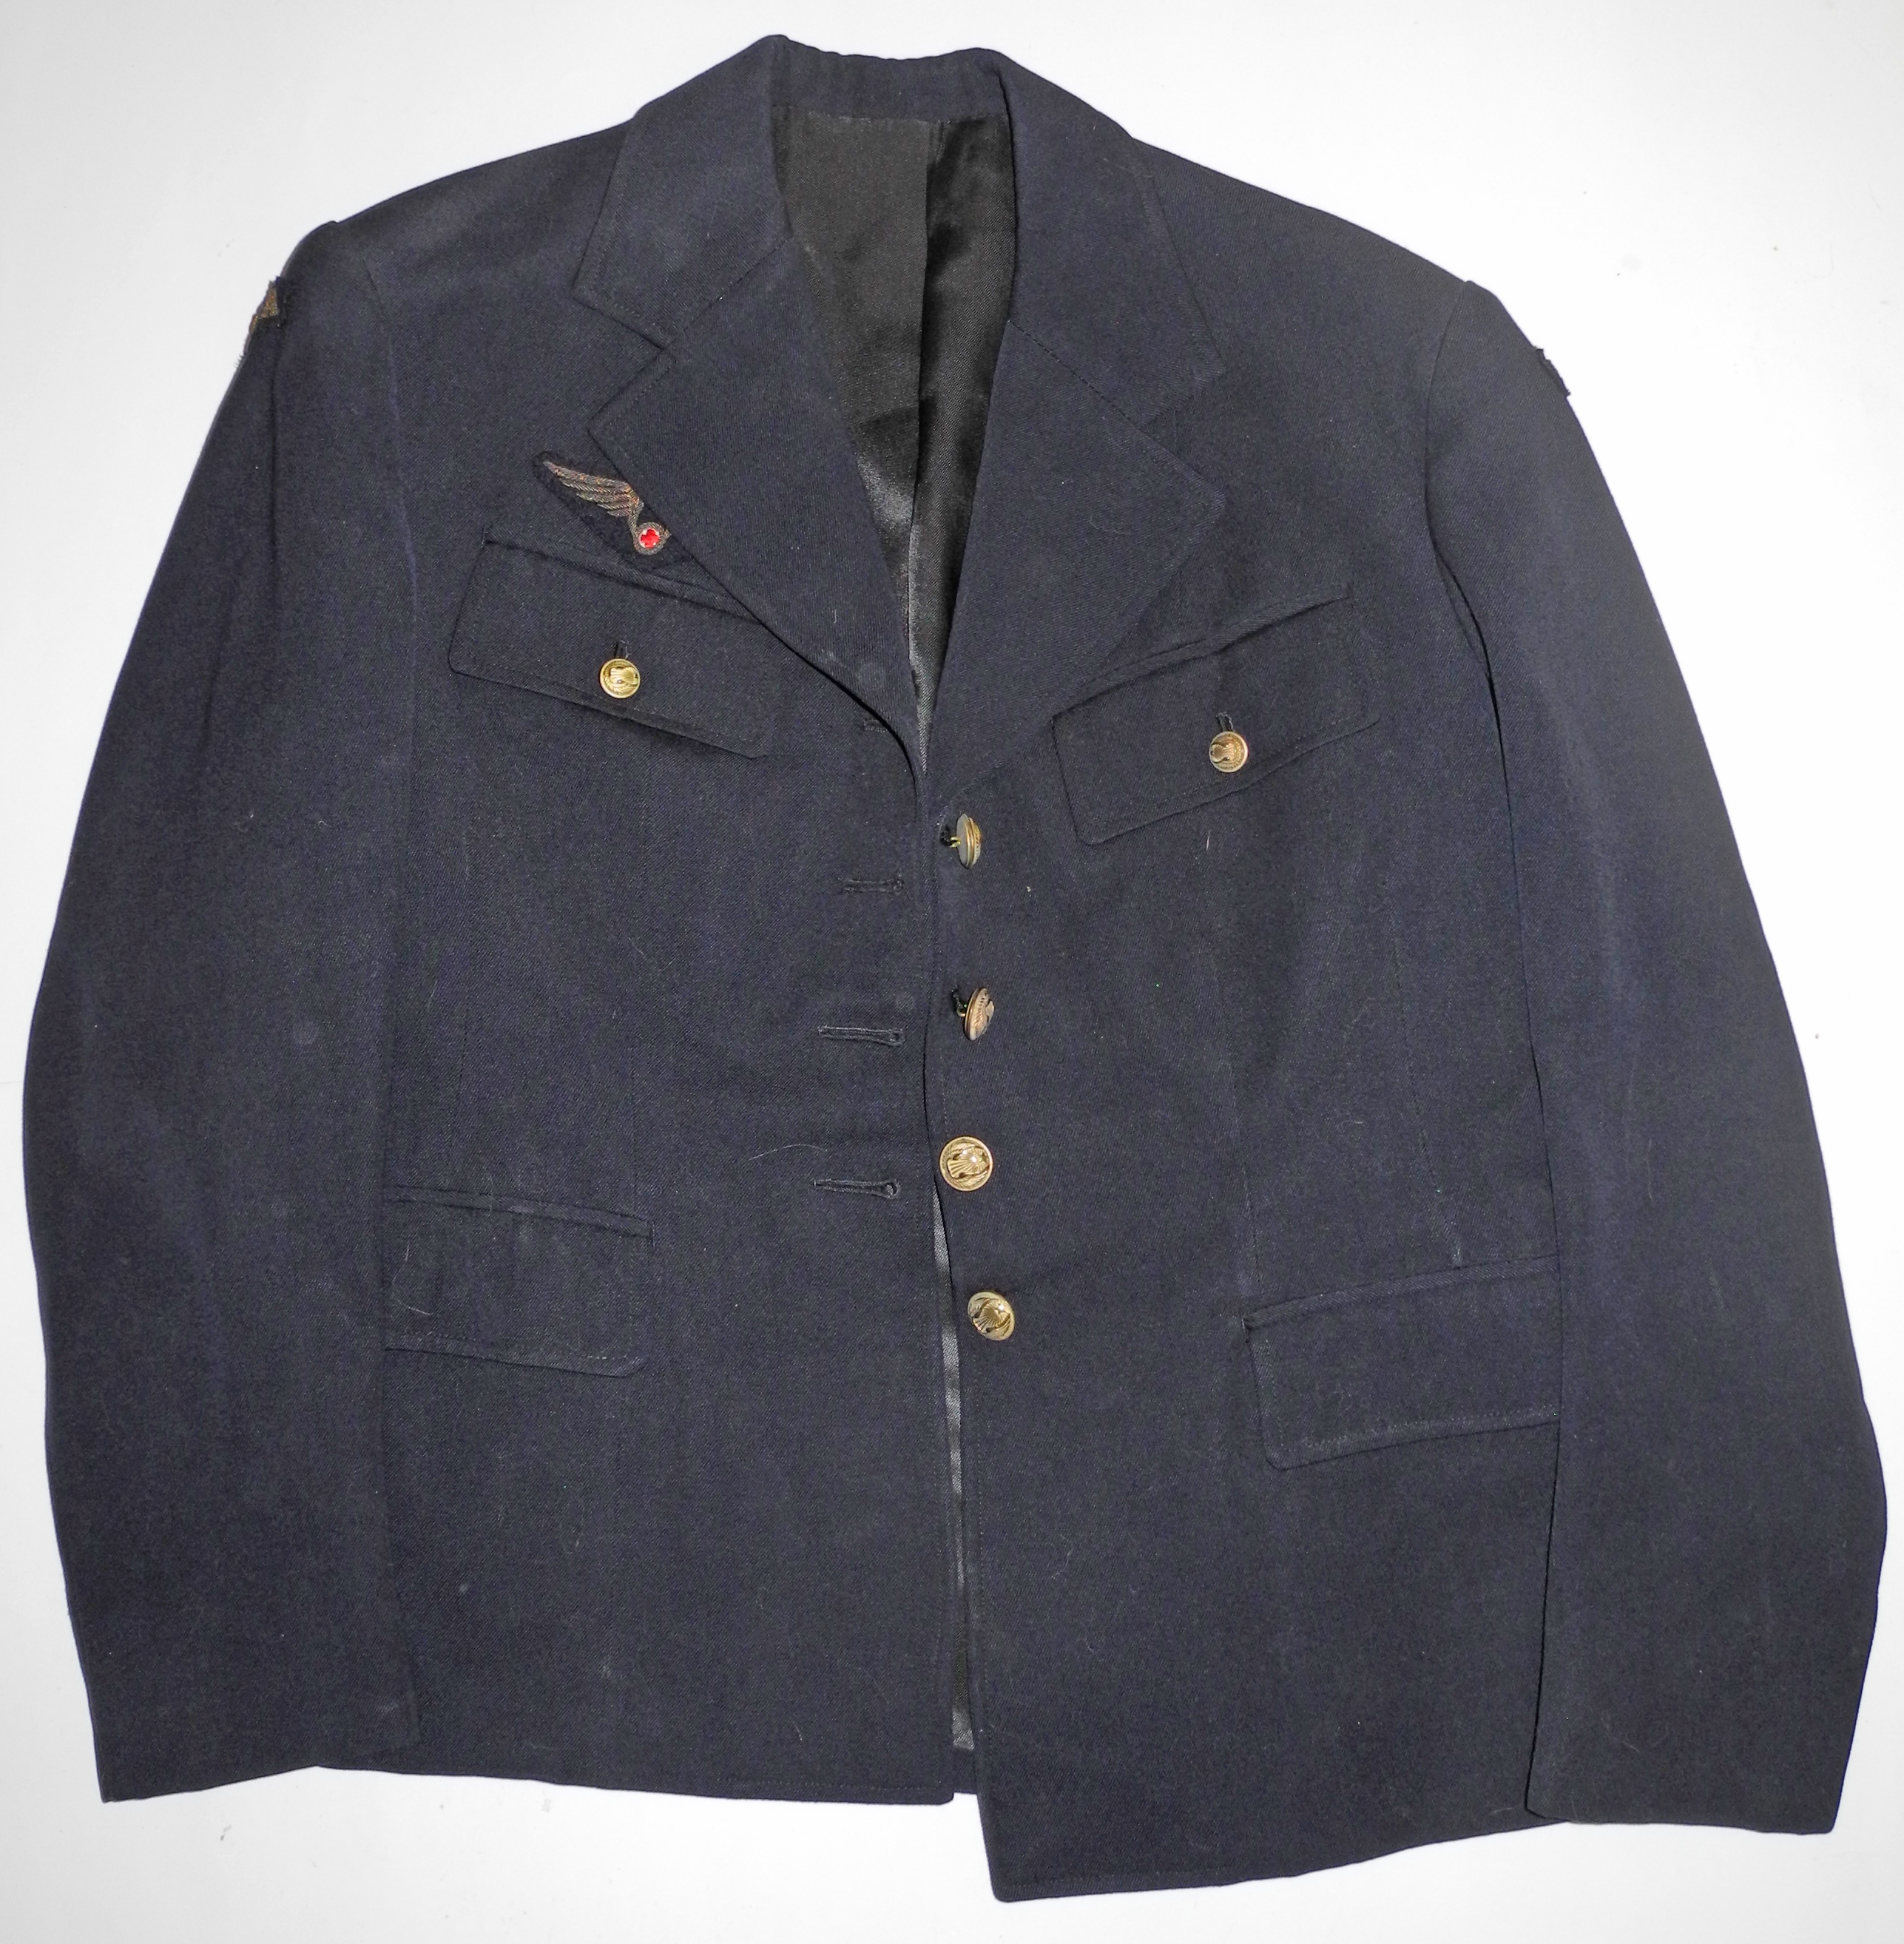 WWII era French Air Force Flight Nurse uniform jacket